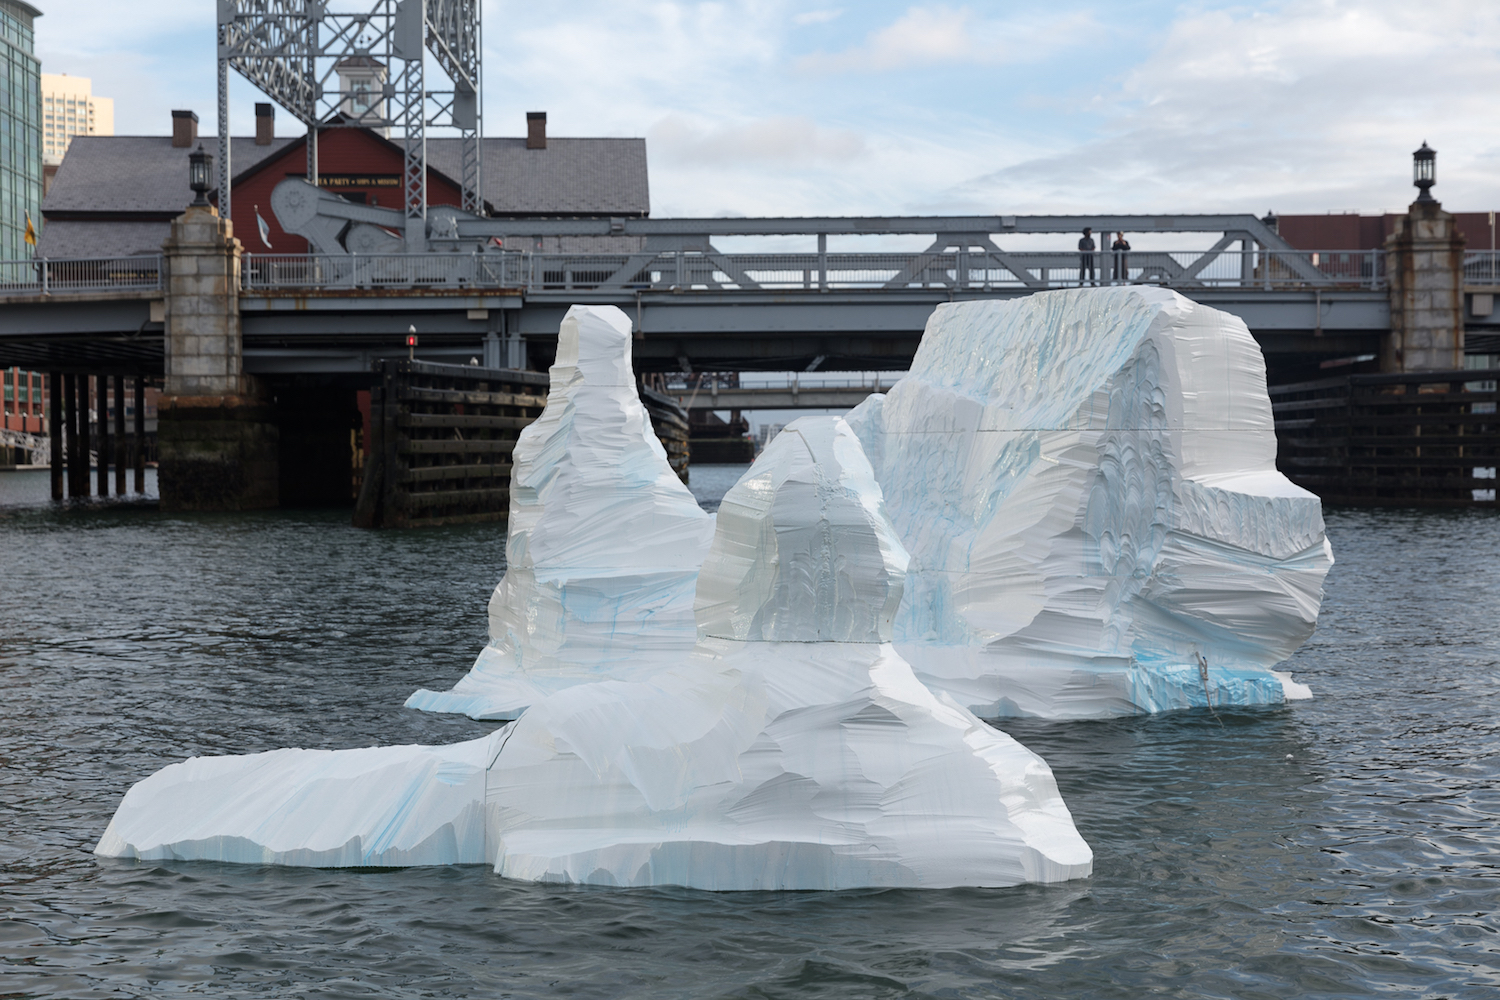 Gianna Stewart , Iceberg , FPAC Floating Public Art, Fort Point Channel, Boston, MA, 2018 (photo credit: Robert Gilliam)